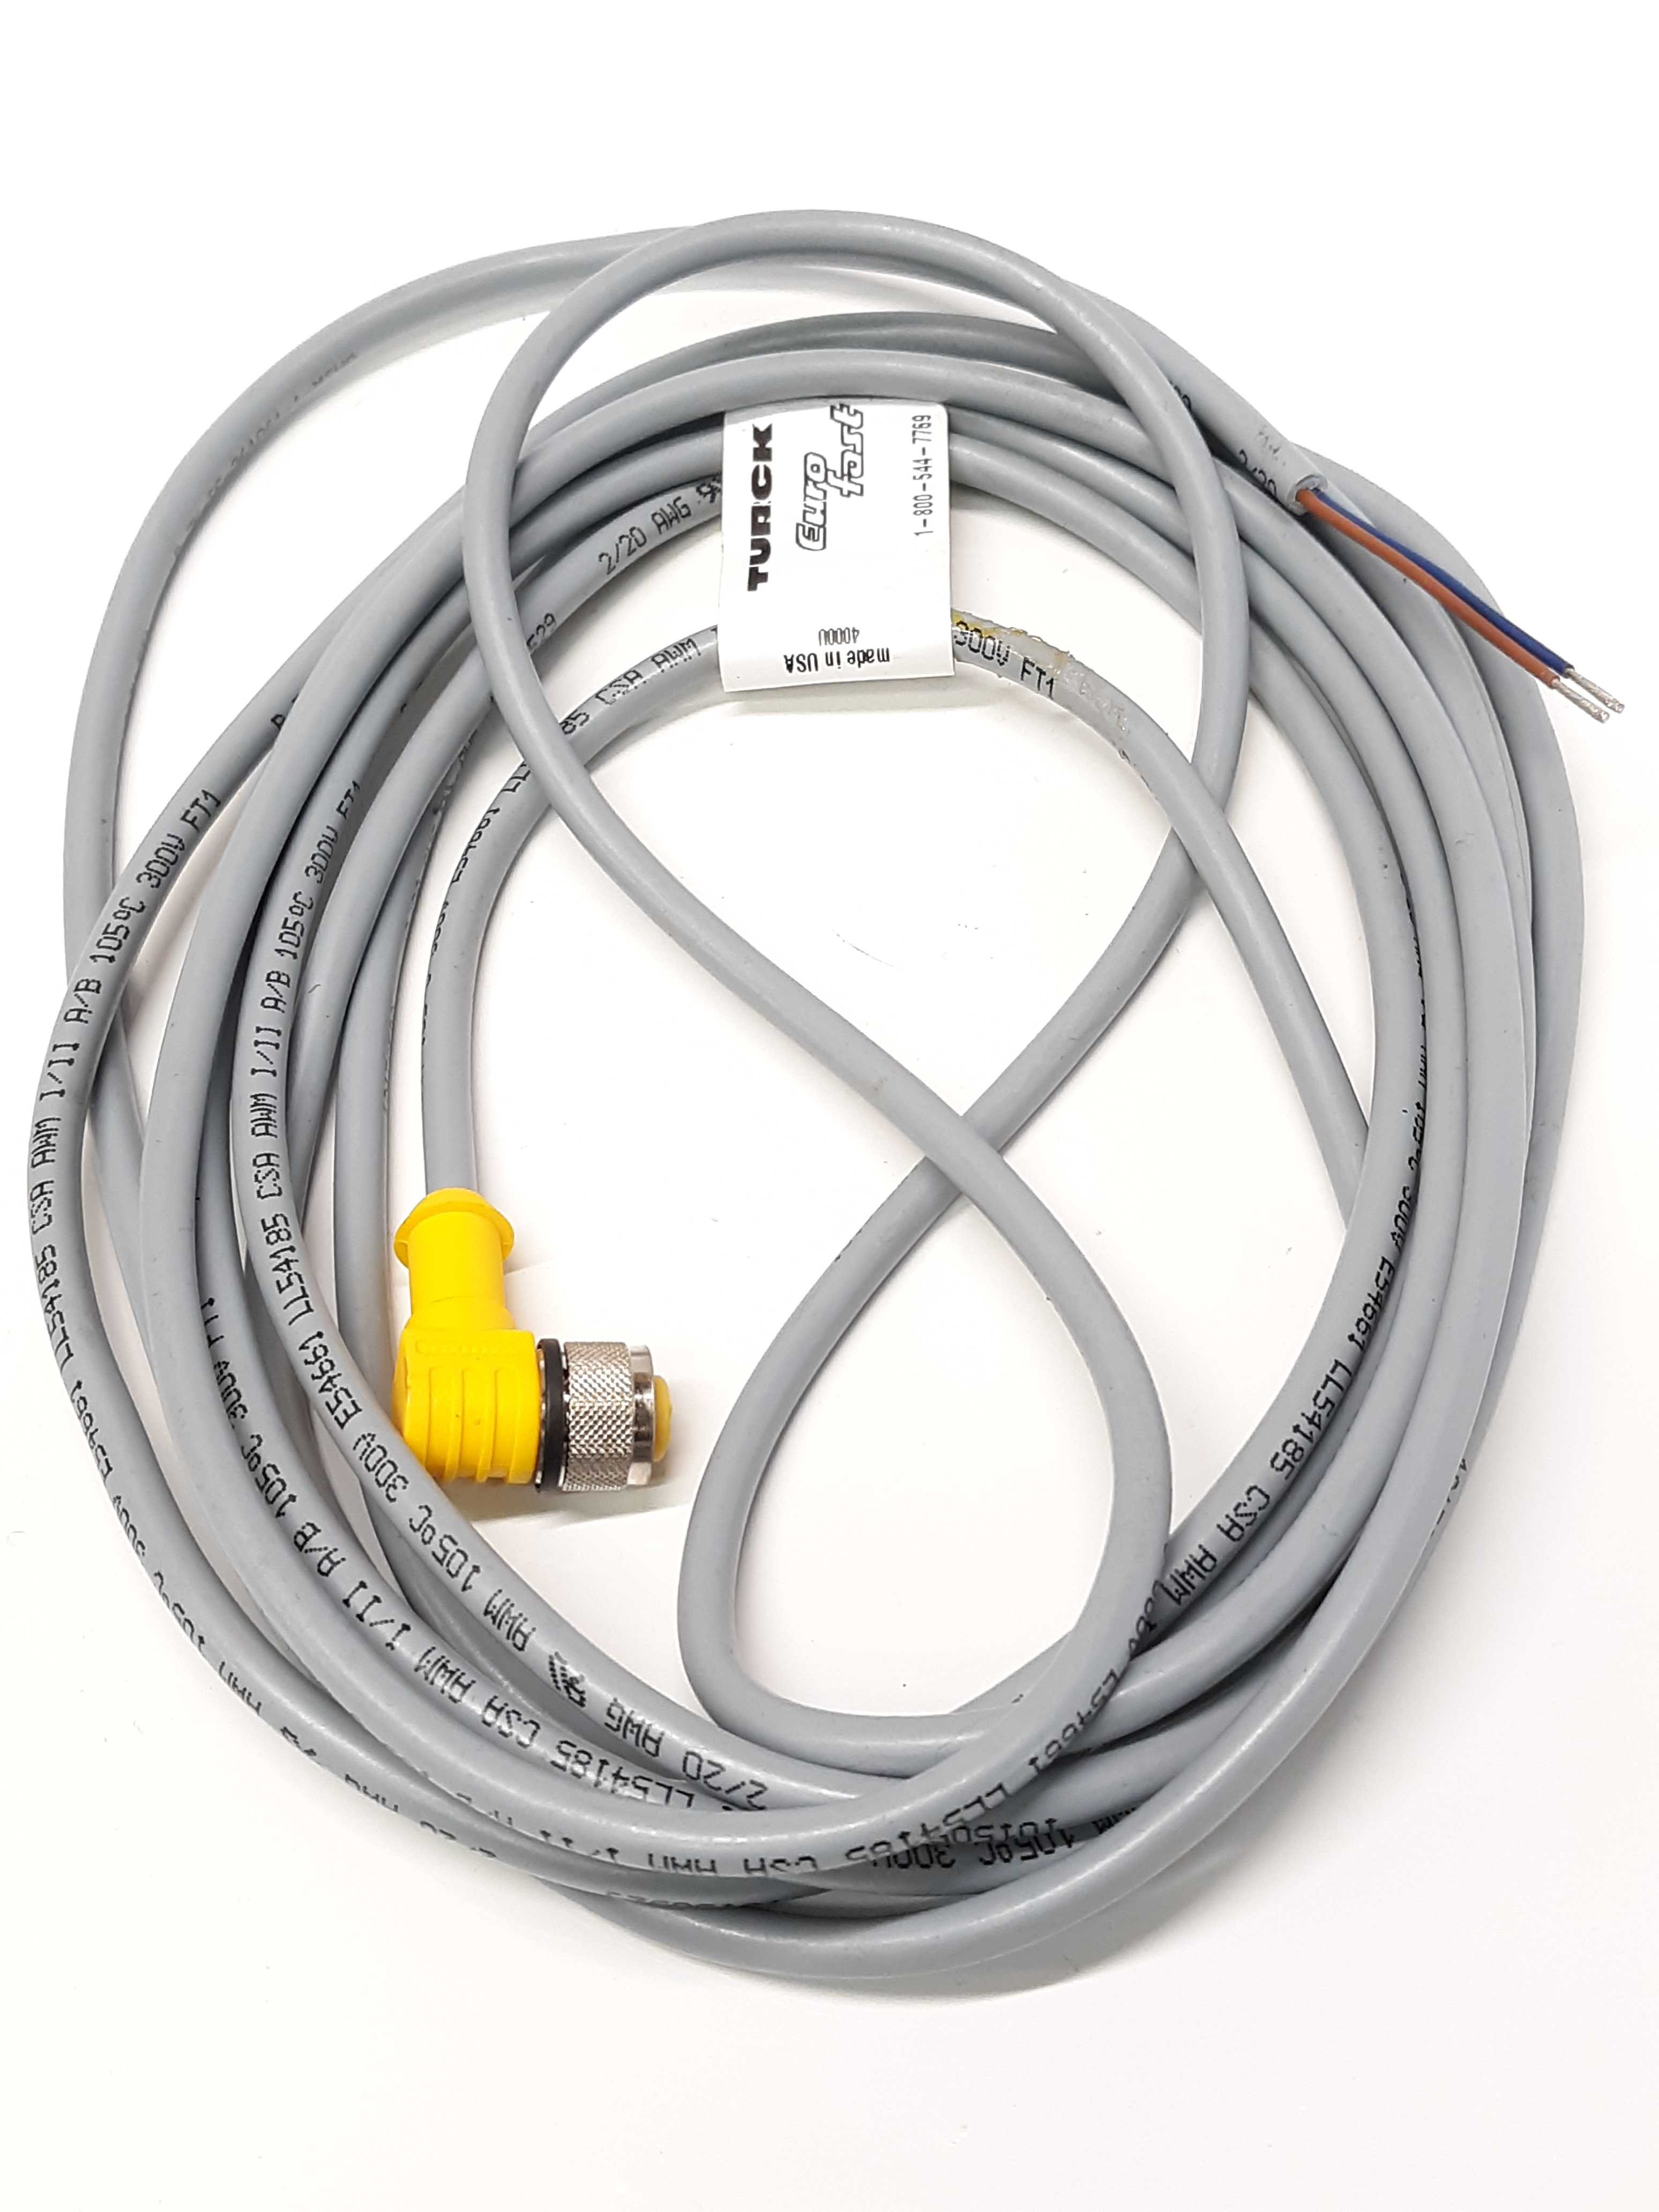 Turck WK 4.2T-4 Eurofast Molded Cable Cordset Female